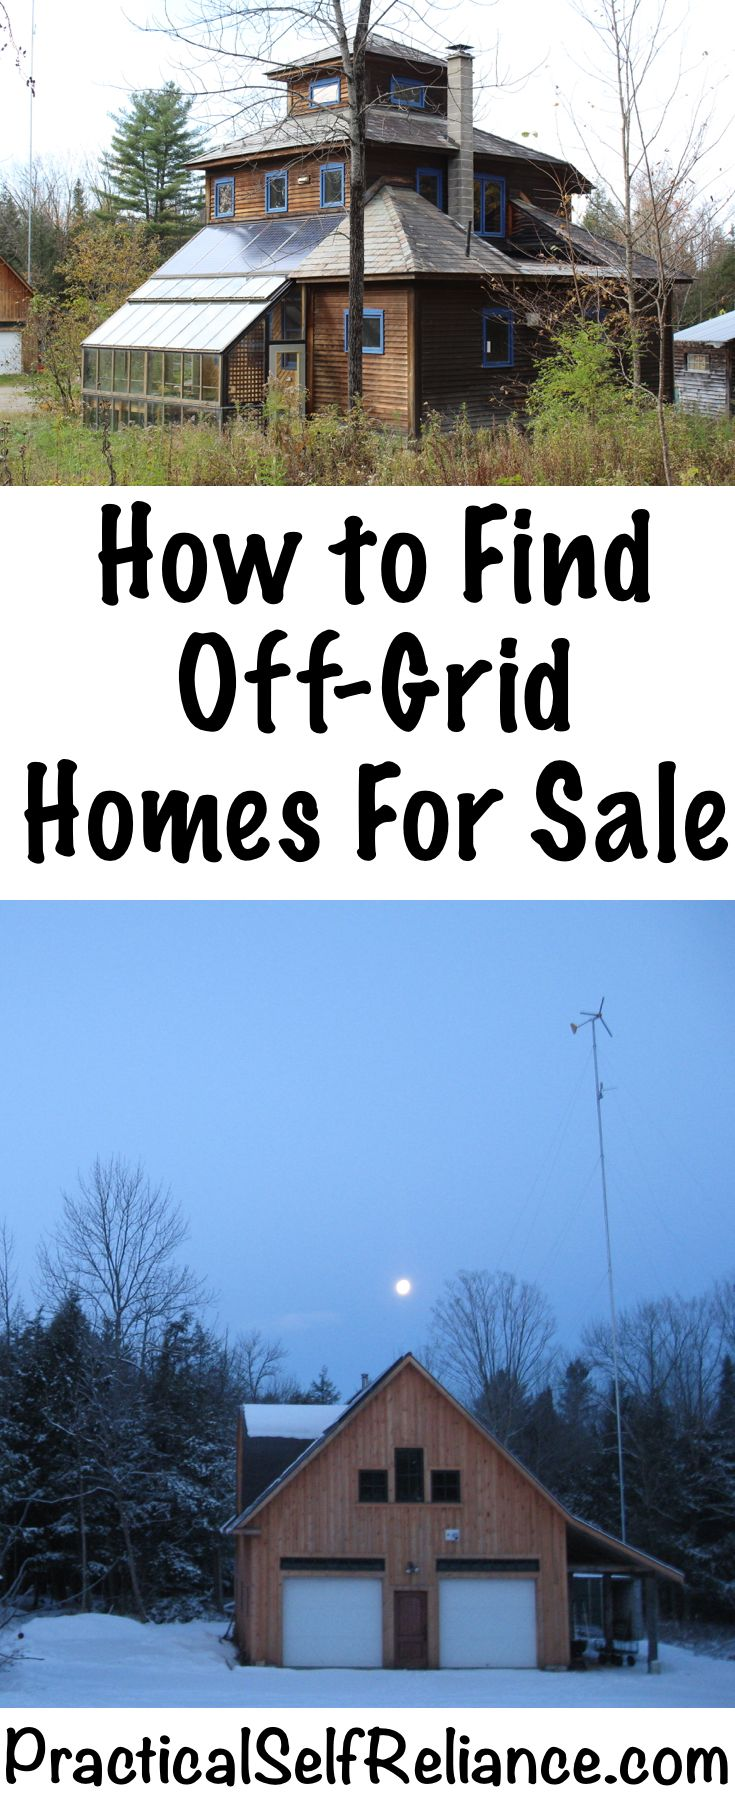 How To Find Off Grid Homes For Sale Off The Grid Off Grid House Homesteading